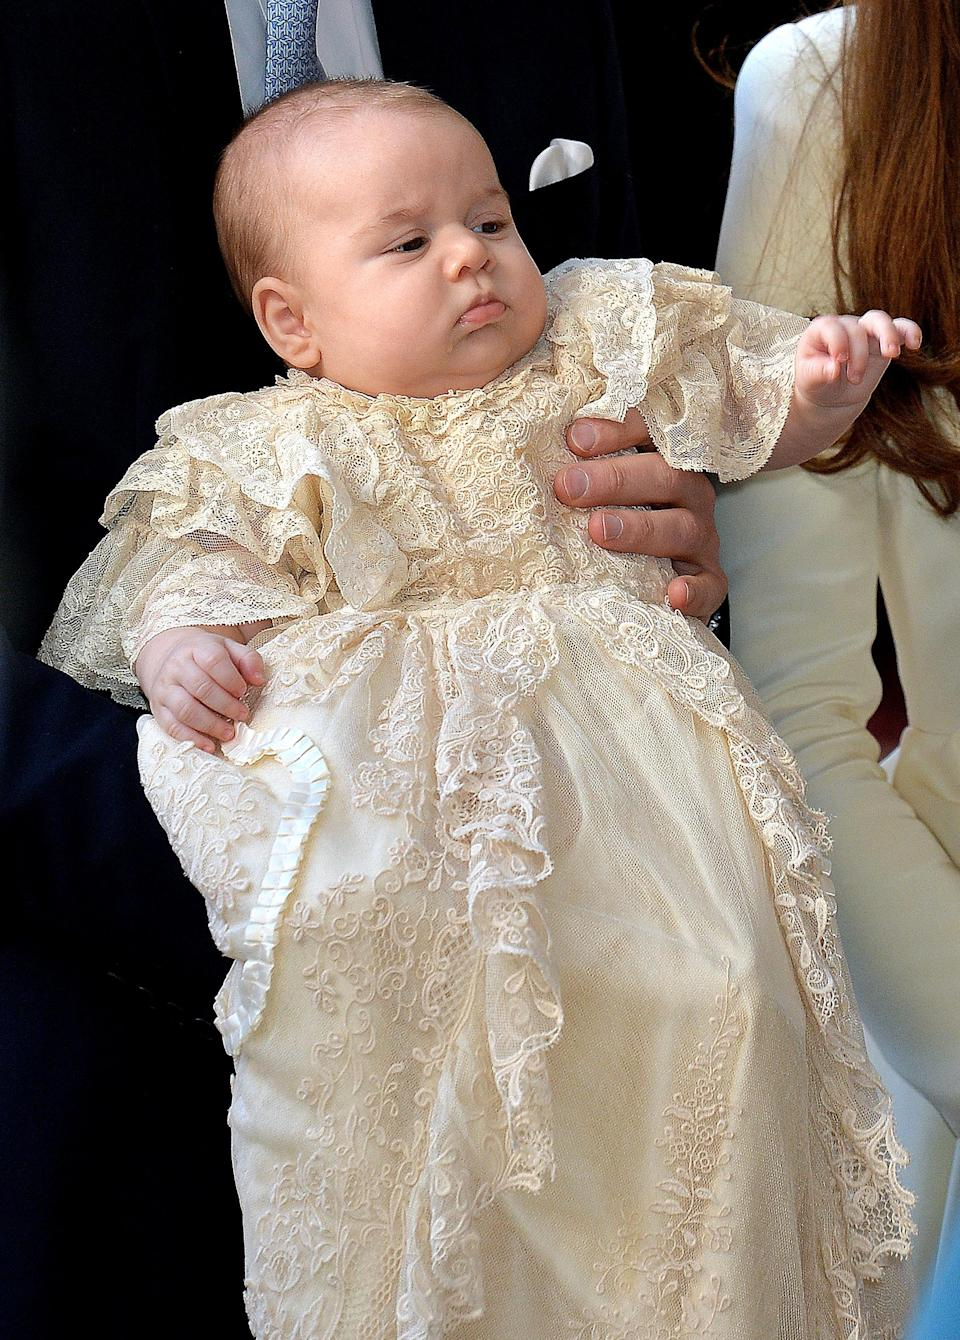 Prince George wearing the Honiton lace and white satin gown at his christening in October 2013. [Photo: Getty]